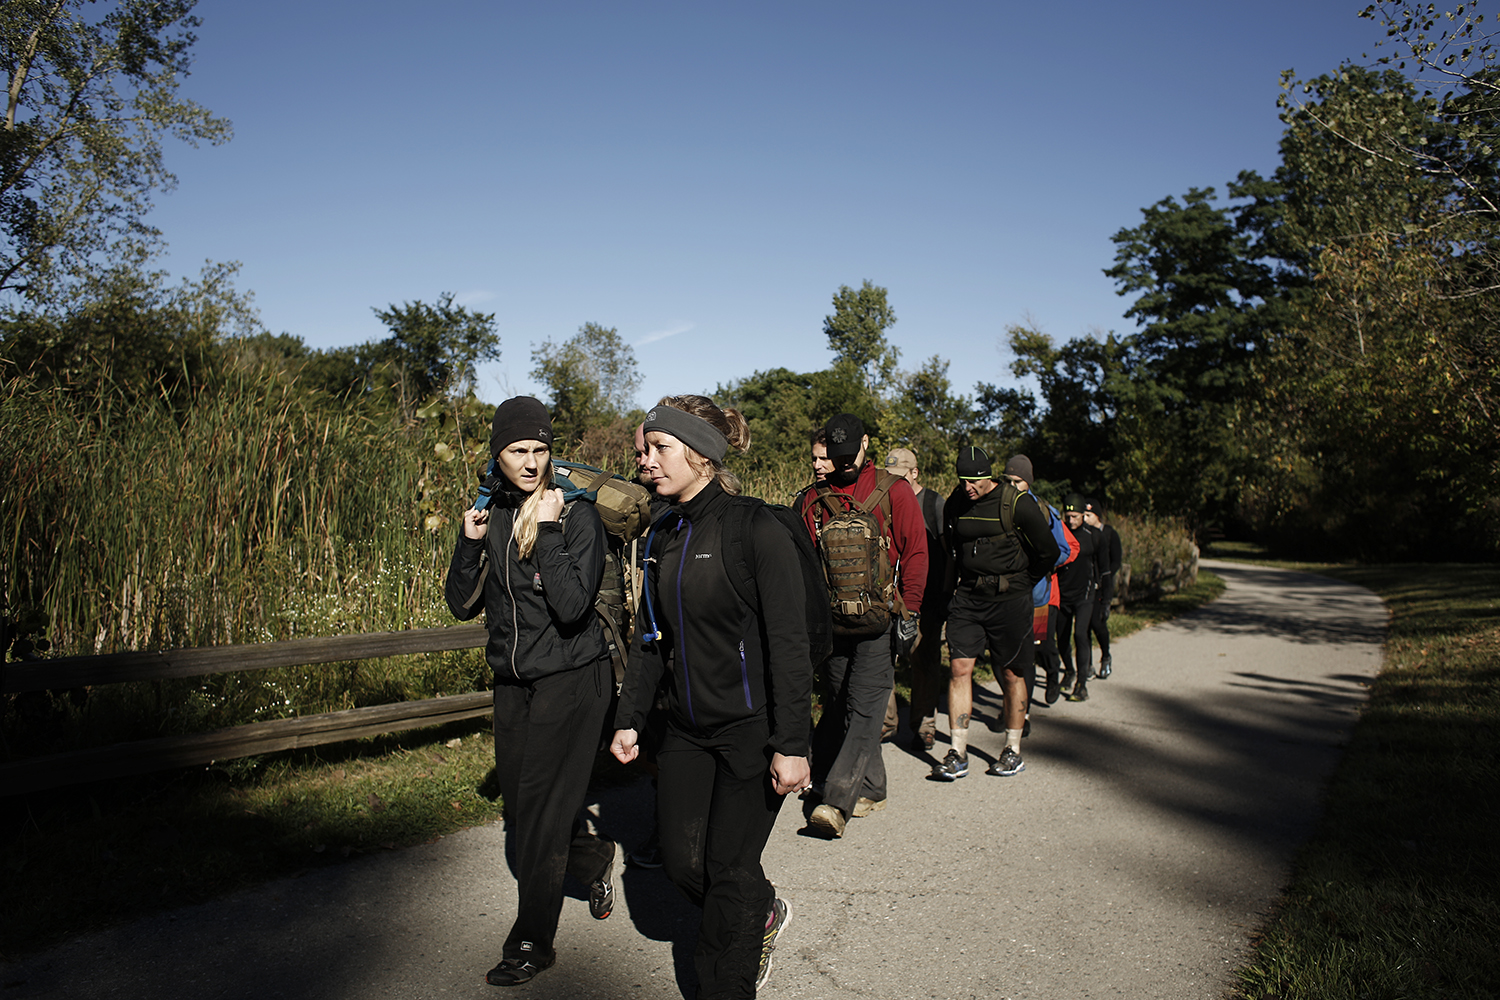 GORUCK Challenge Class 771 on Saturday, September 14, 2014 in Ann Arbor.